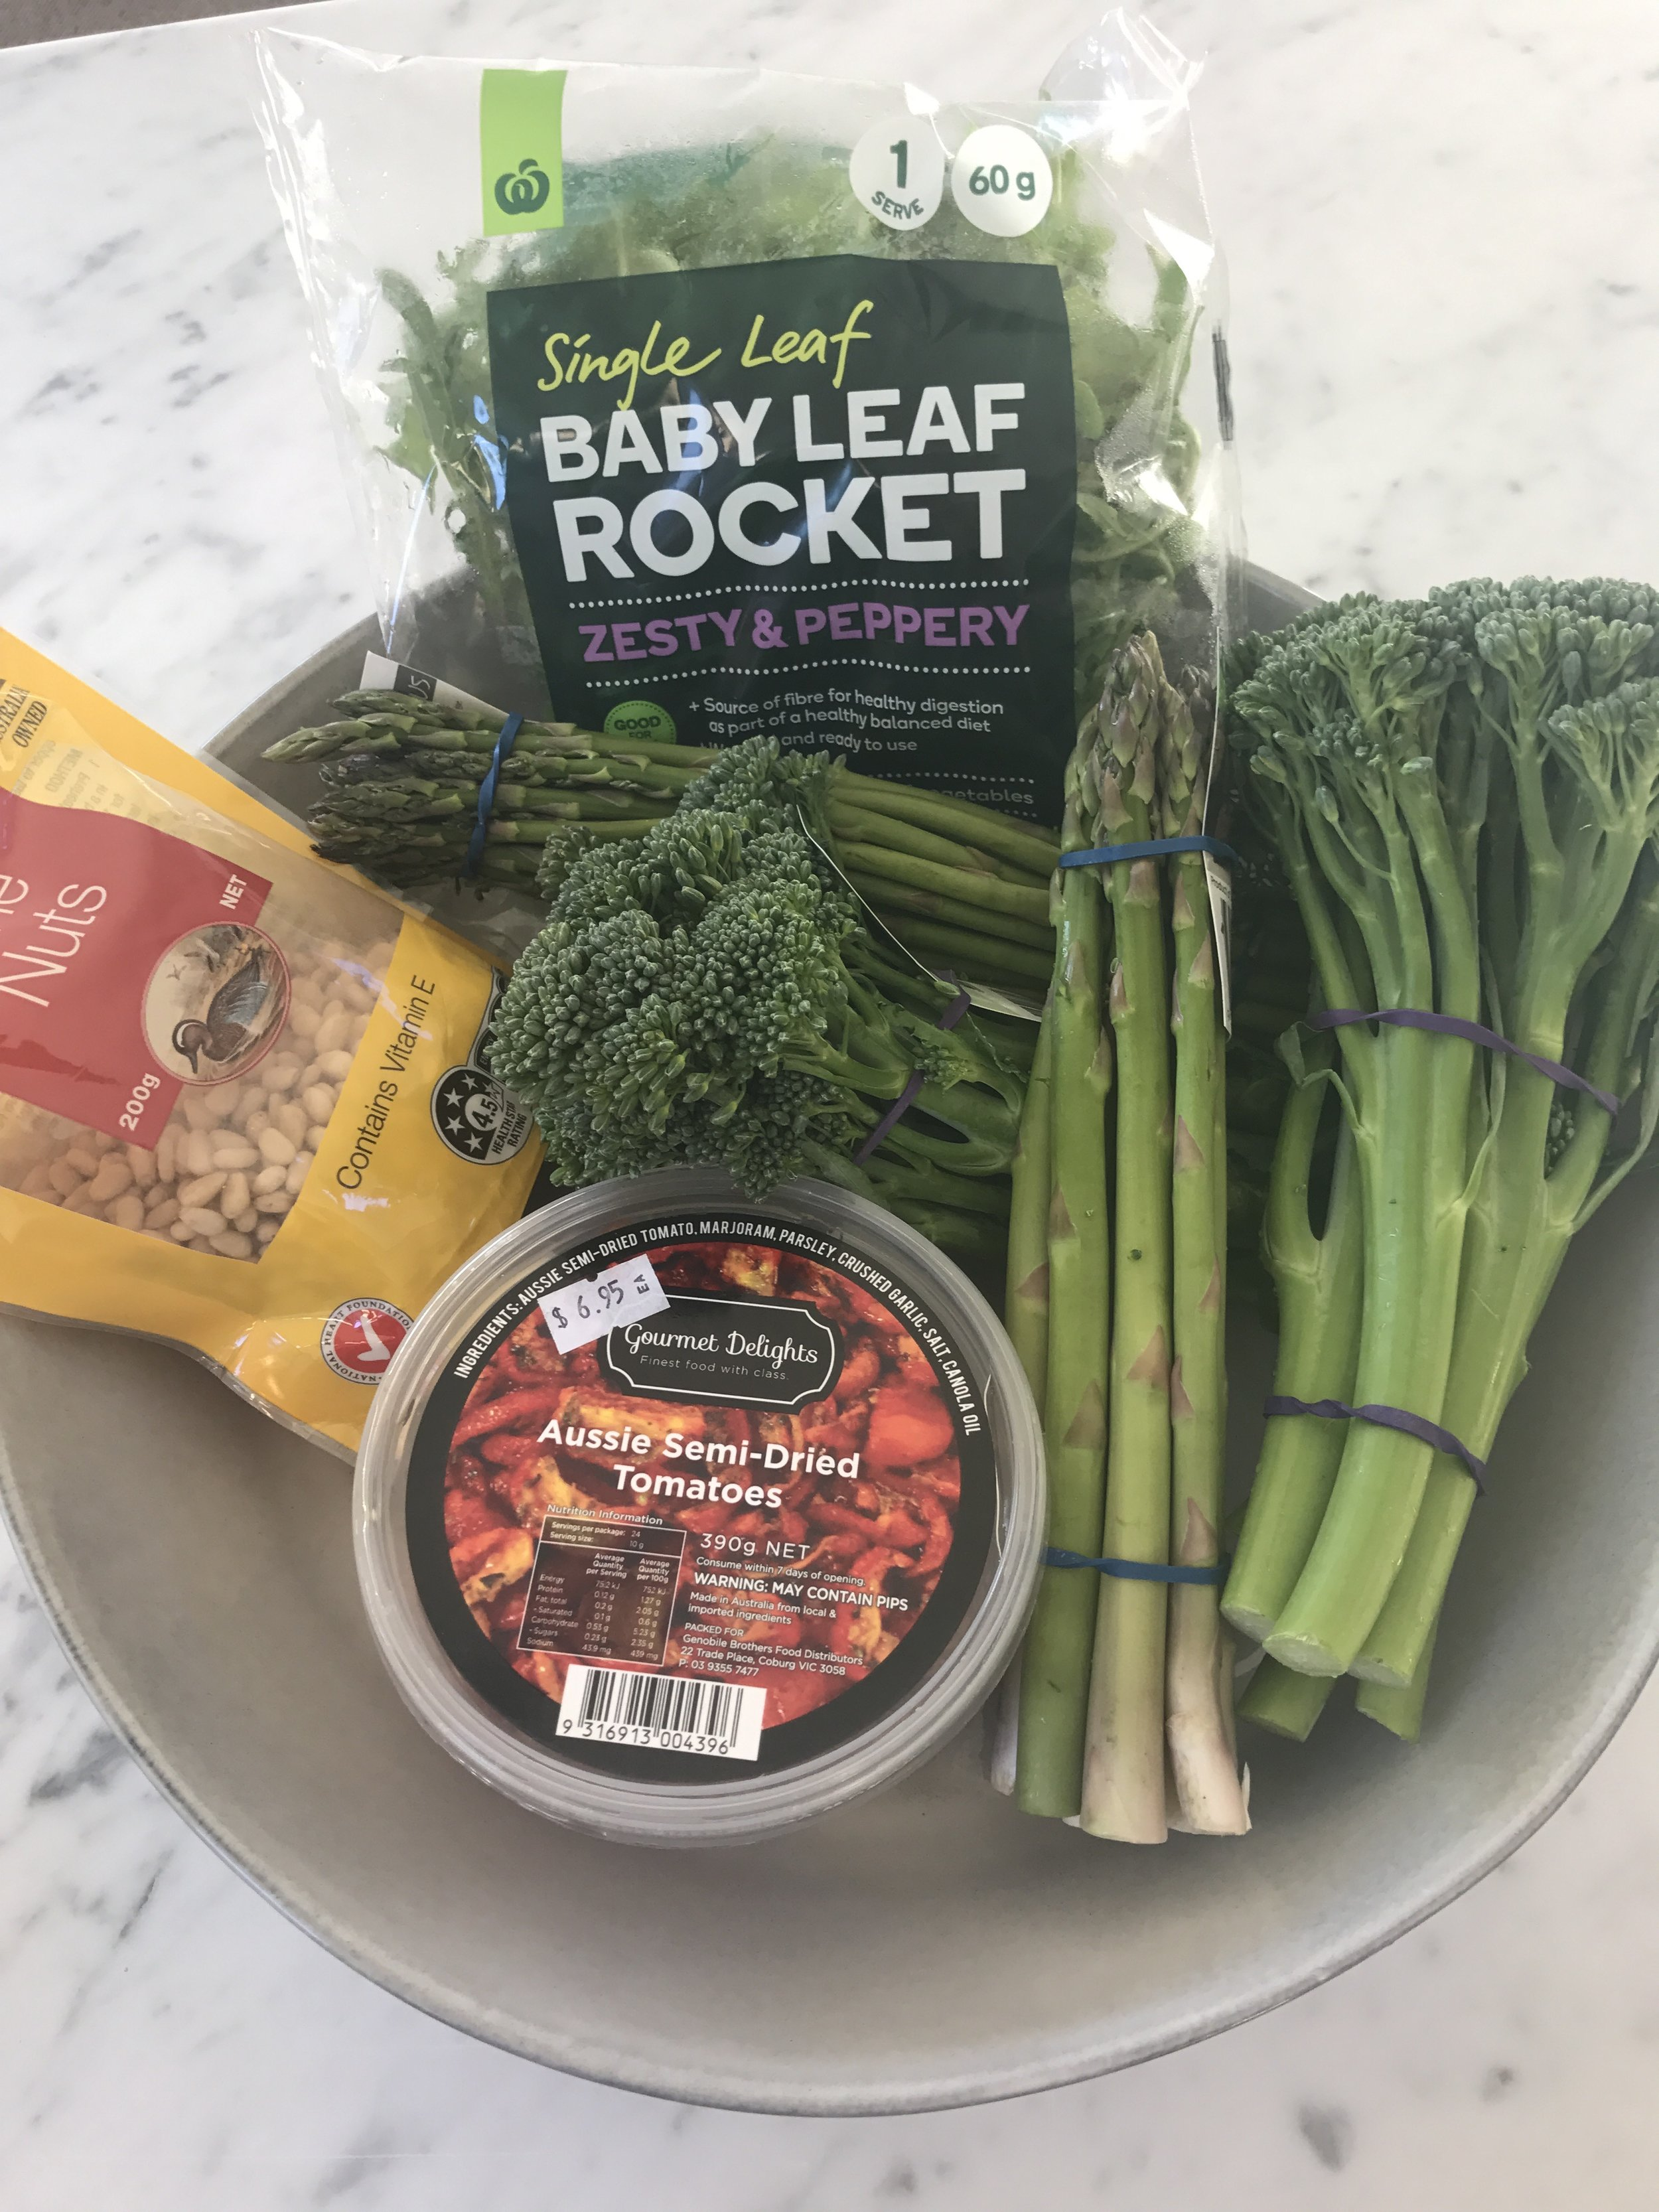 Heat coconut oil, or any oil in wok or pan. Stir fry chopped asparagus and broccolini for 2 minutes. In a separate pan, toast pinenuts.  Remove both from heat. Place all ingredients in a bowl and serve.